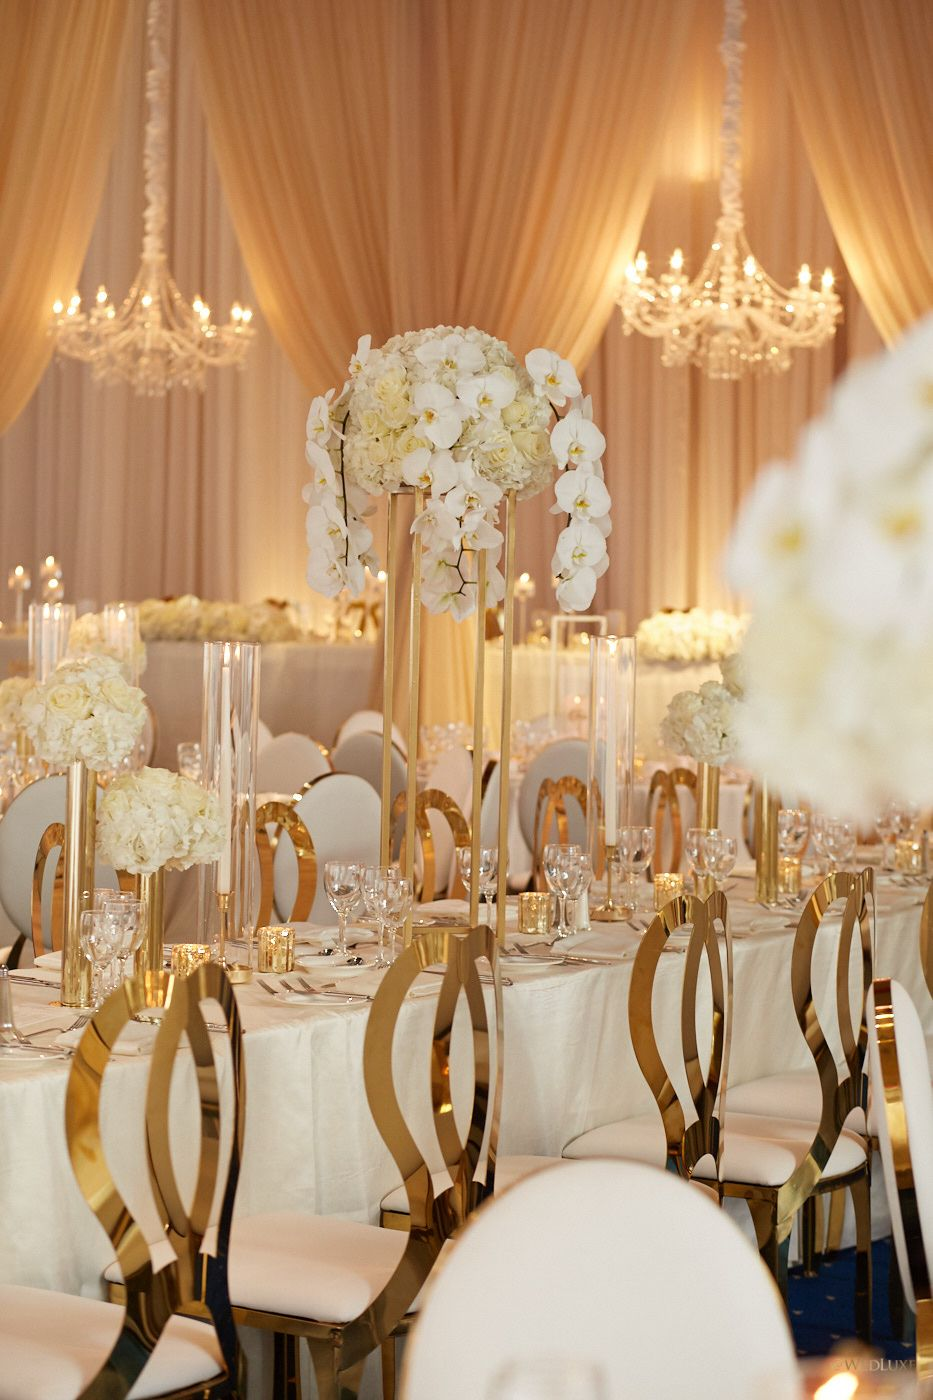 An Elegant White And Gold Wedding Yes Please Wedluxe Magazine Gold Wedding Decorations Gold Wedding Reception White Wedding Decorations